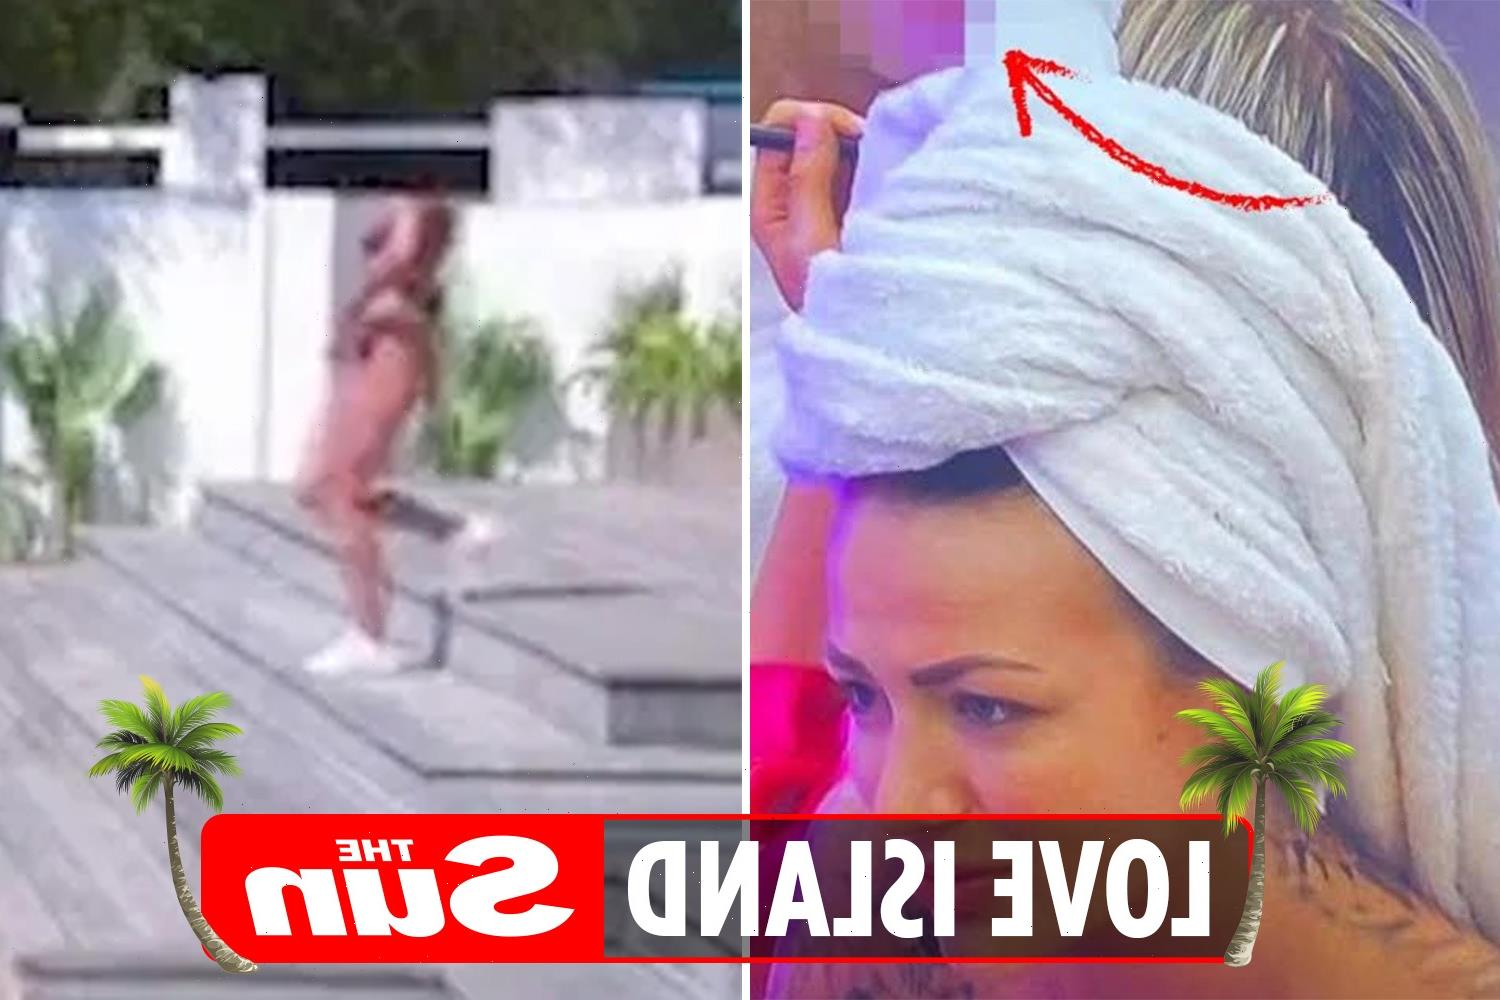 Love Island's biggest blunders – from flashing star's boob to missing heads in bizarre editing fails